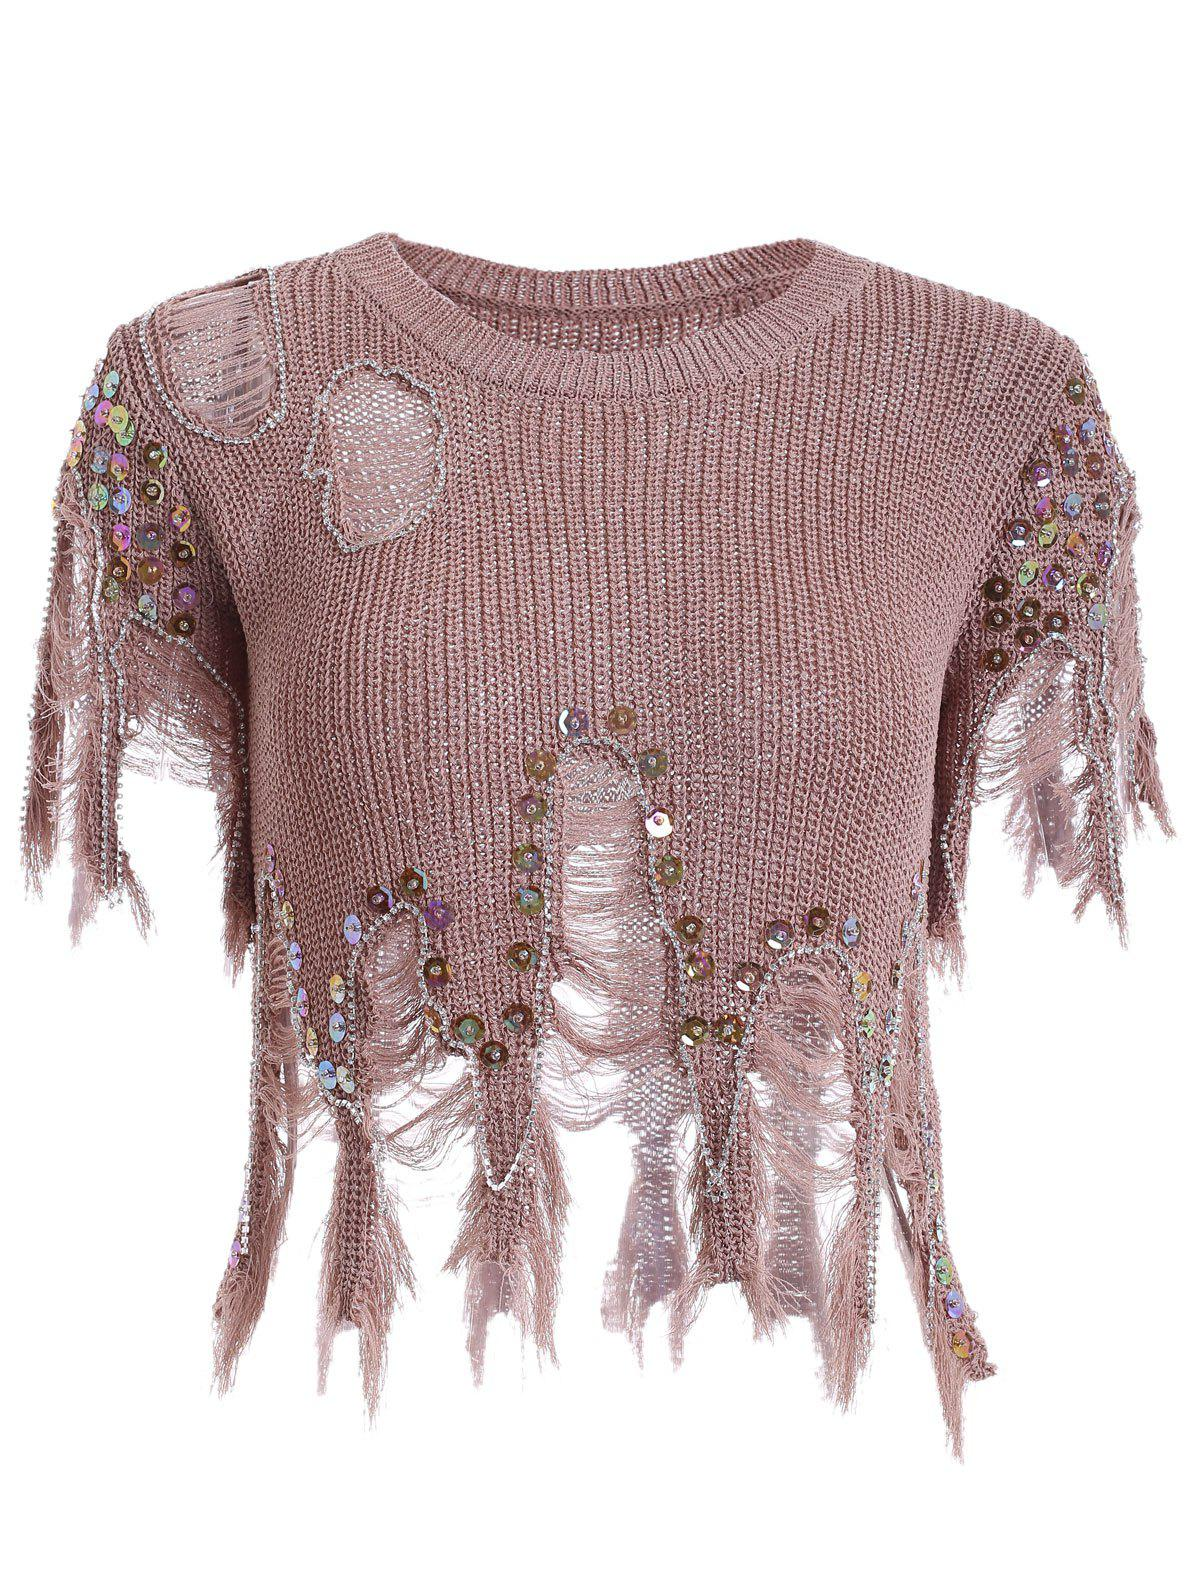 Women's Sequined Hole Design Asymmetric Pullover Sweater - RED BROWN ONE SIZE(FIT SIZE XS TO M)